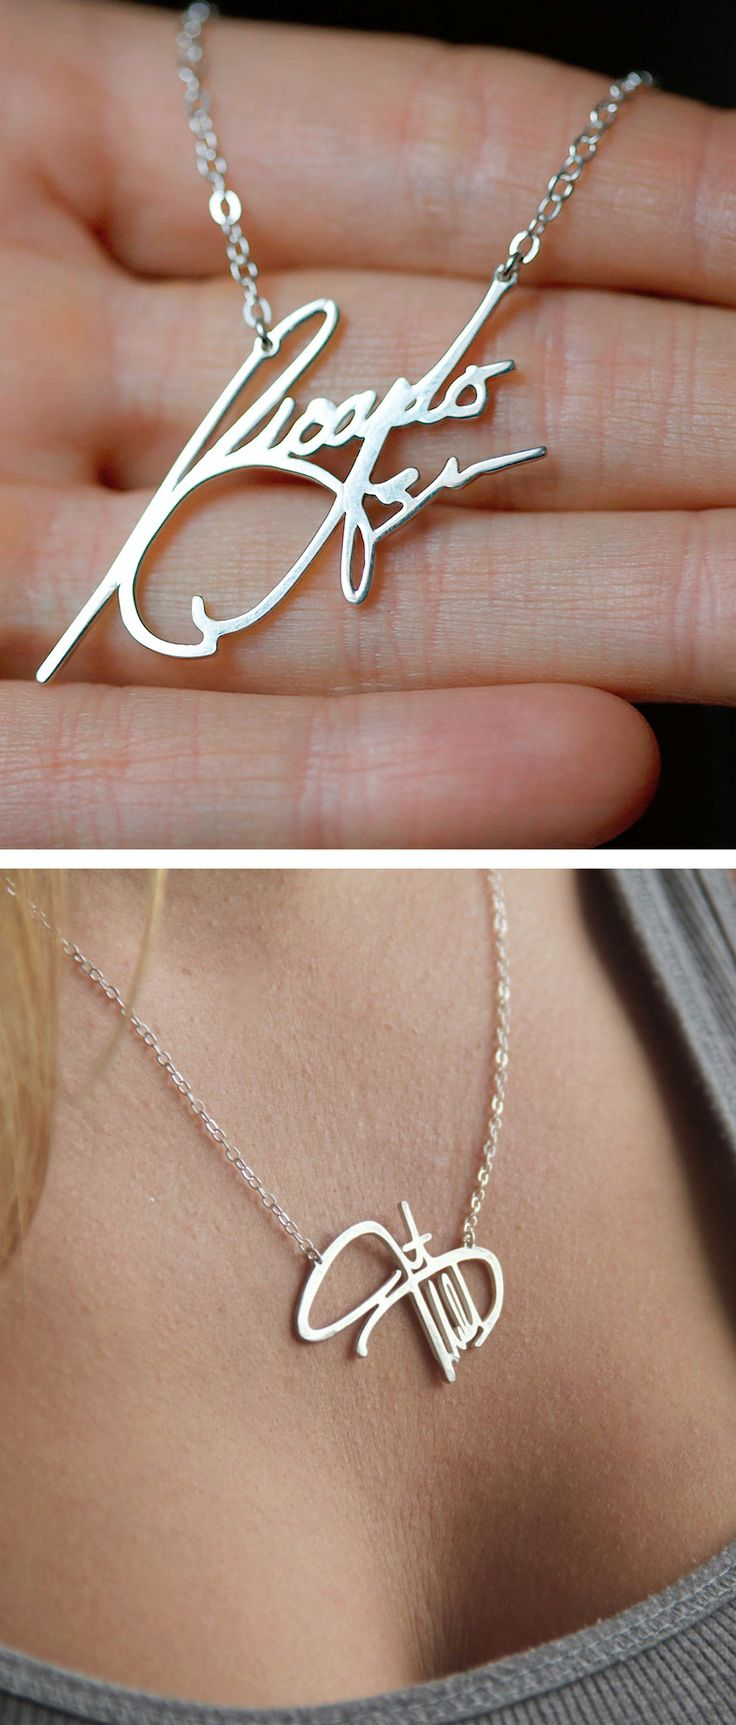 Turn your signature into a necklace - cute gift idea